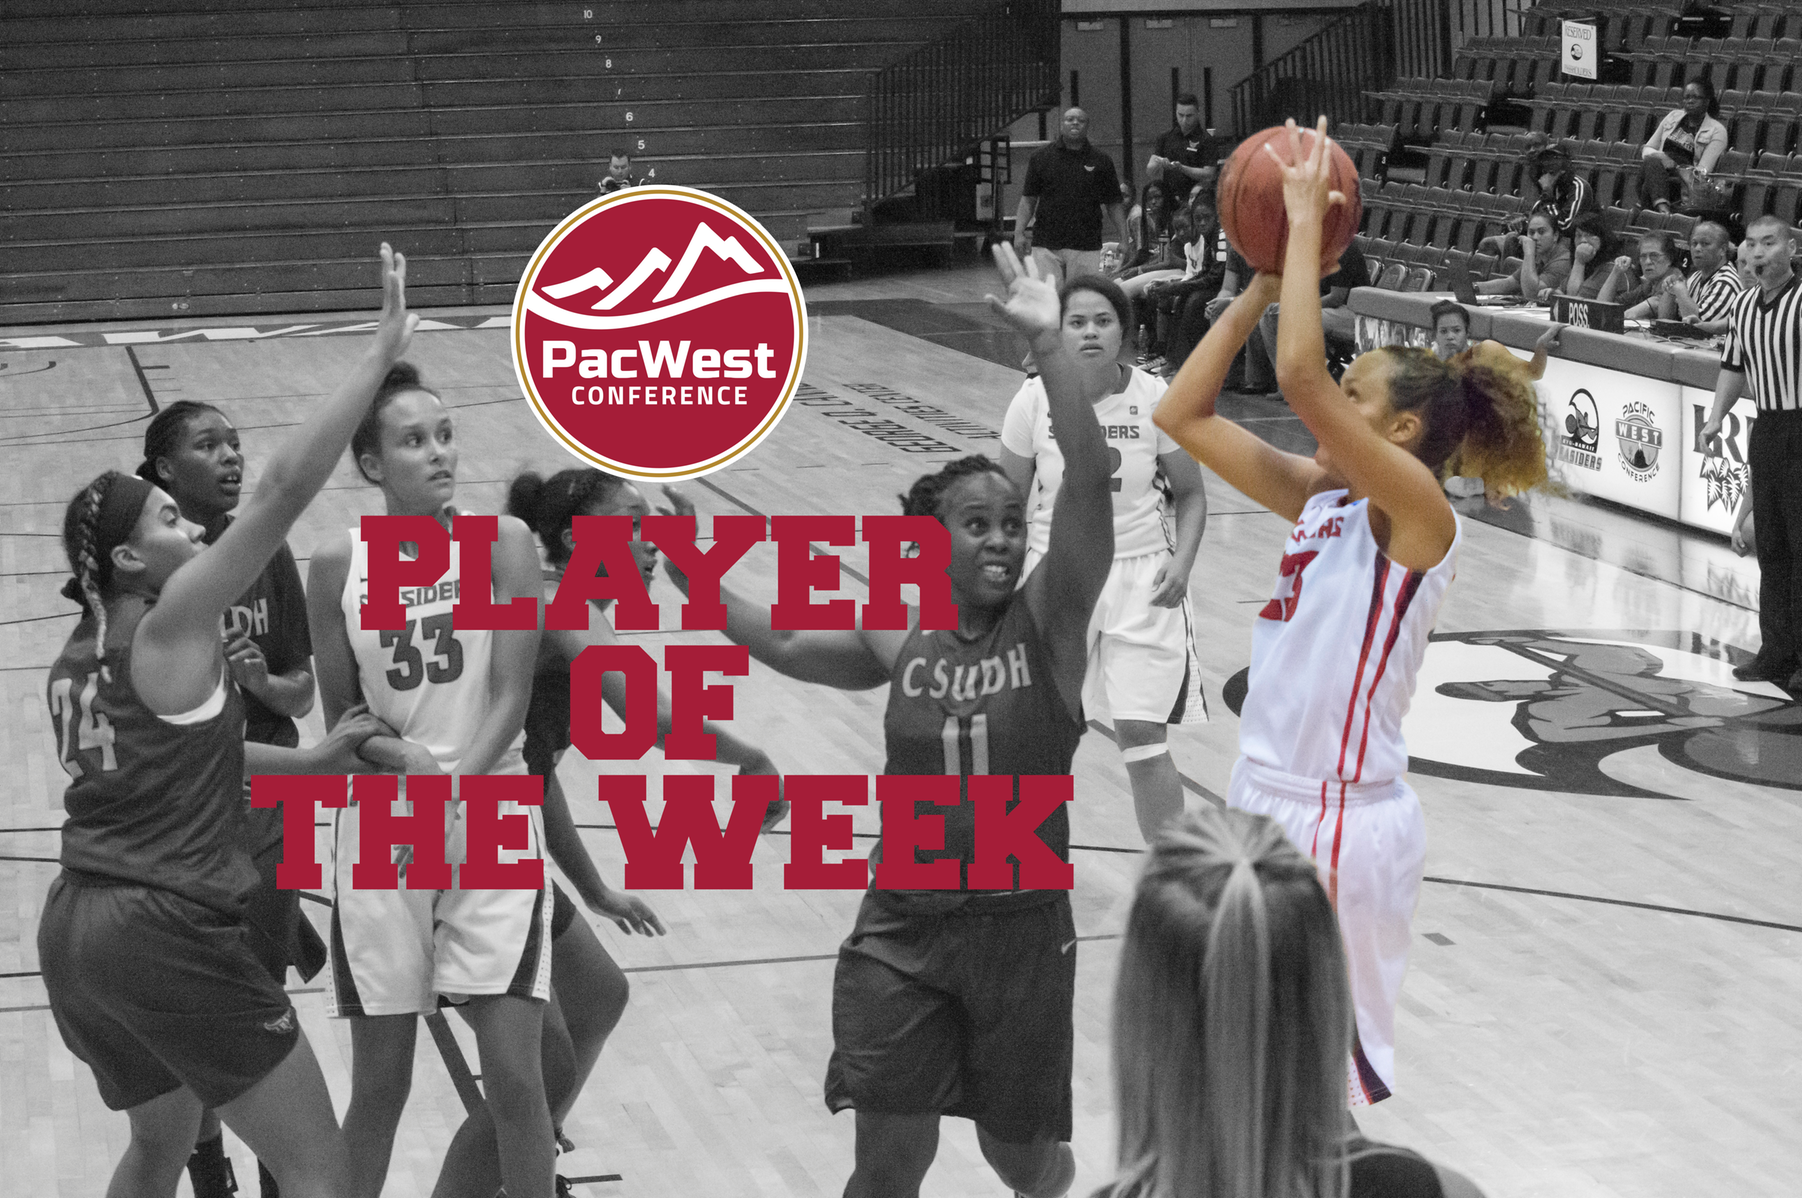 Safia Sheikh named PacWest Player of the Week